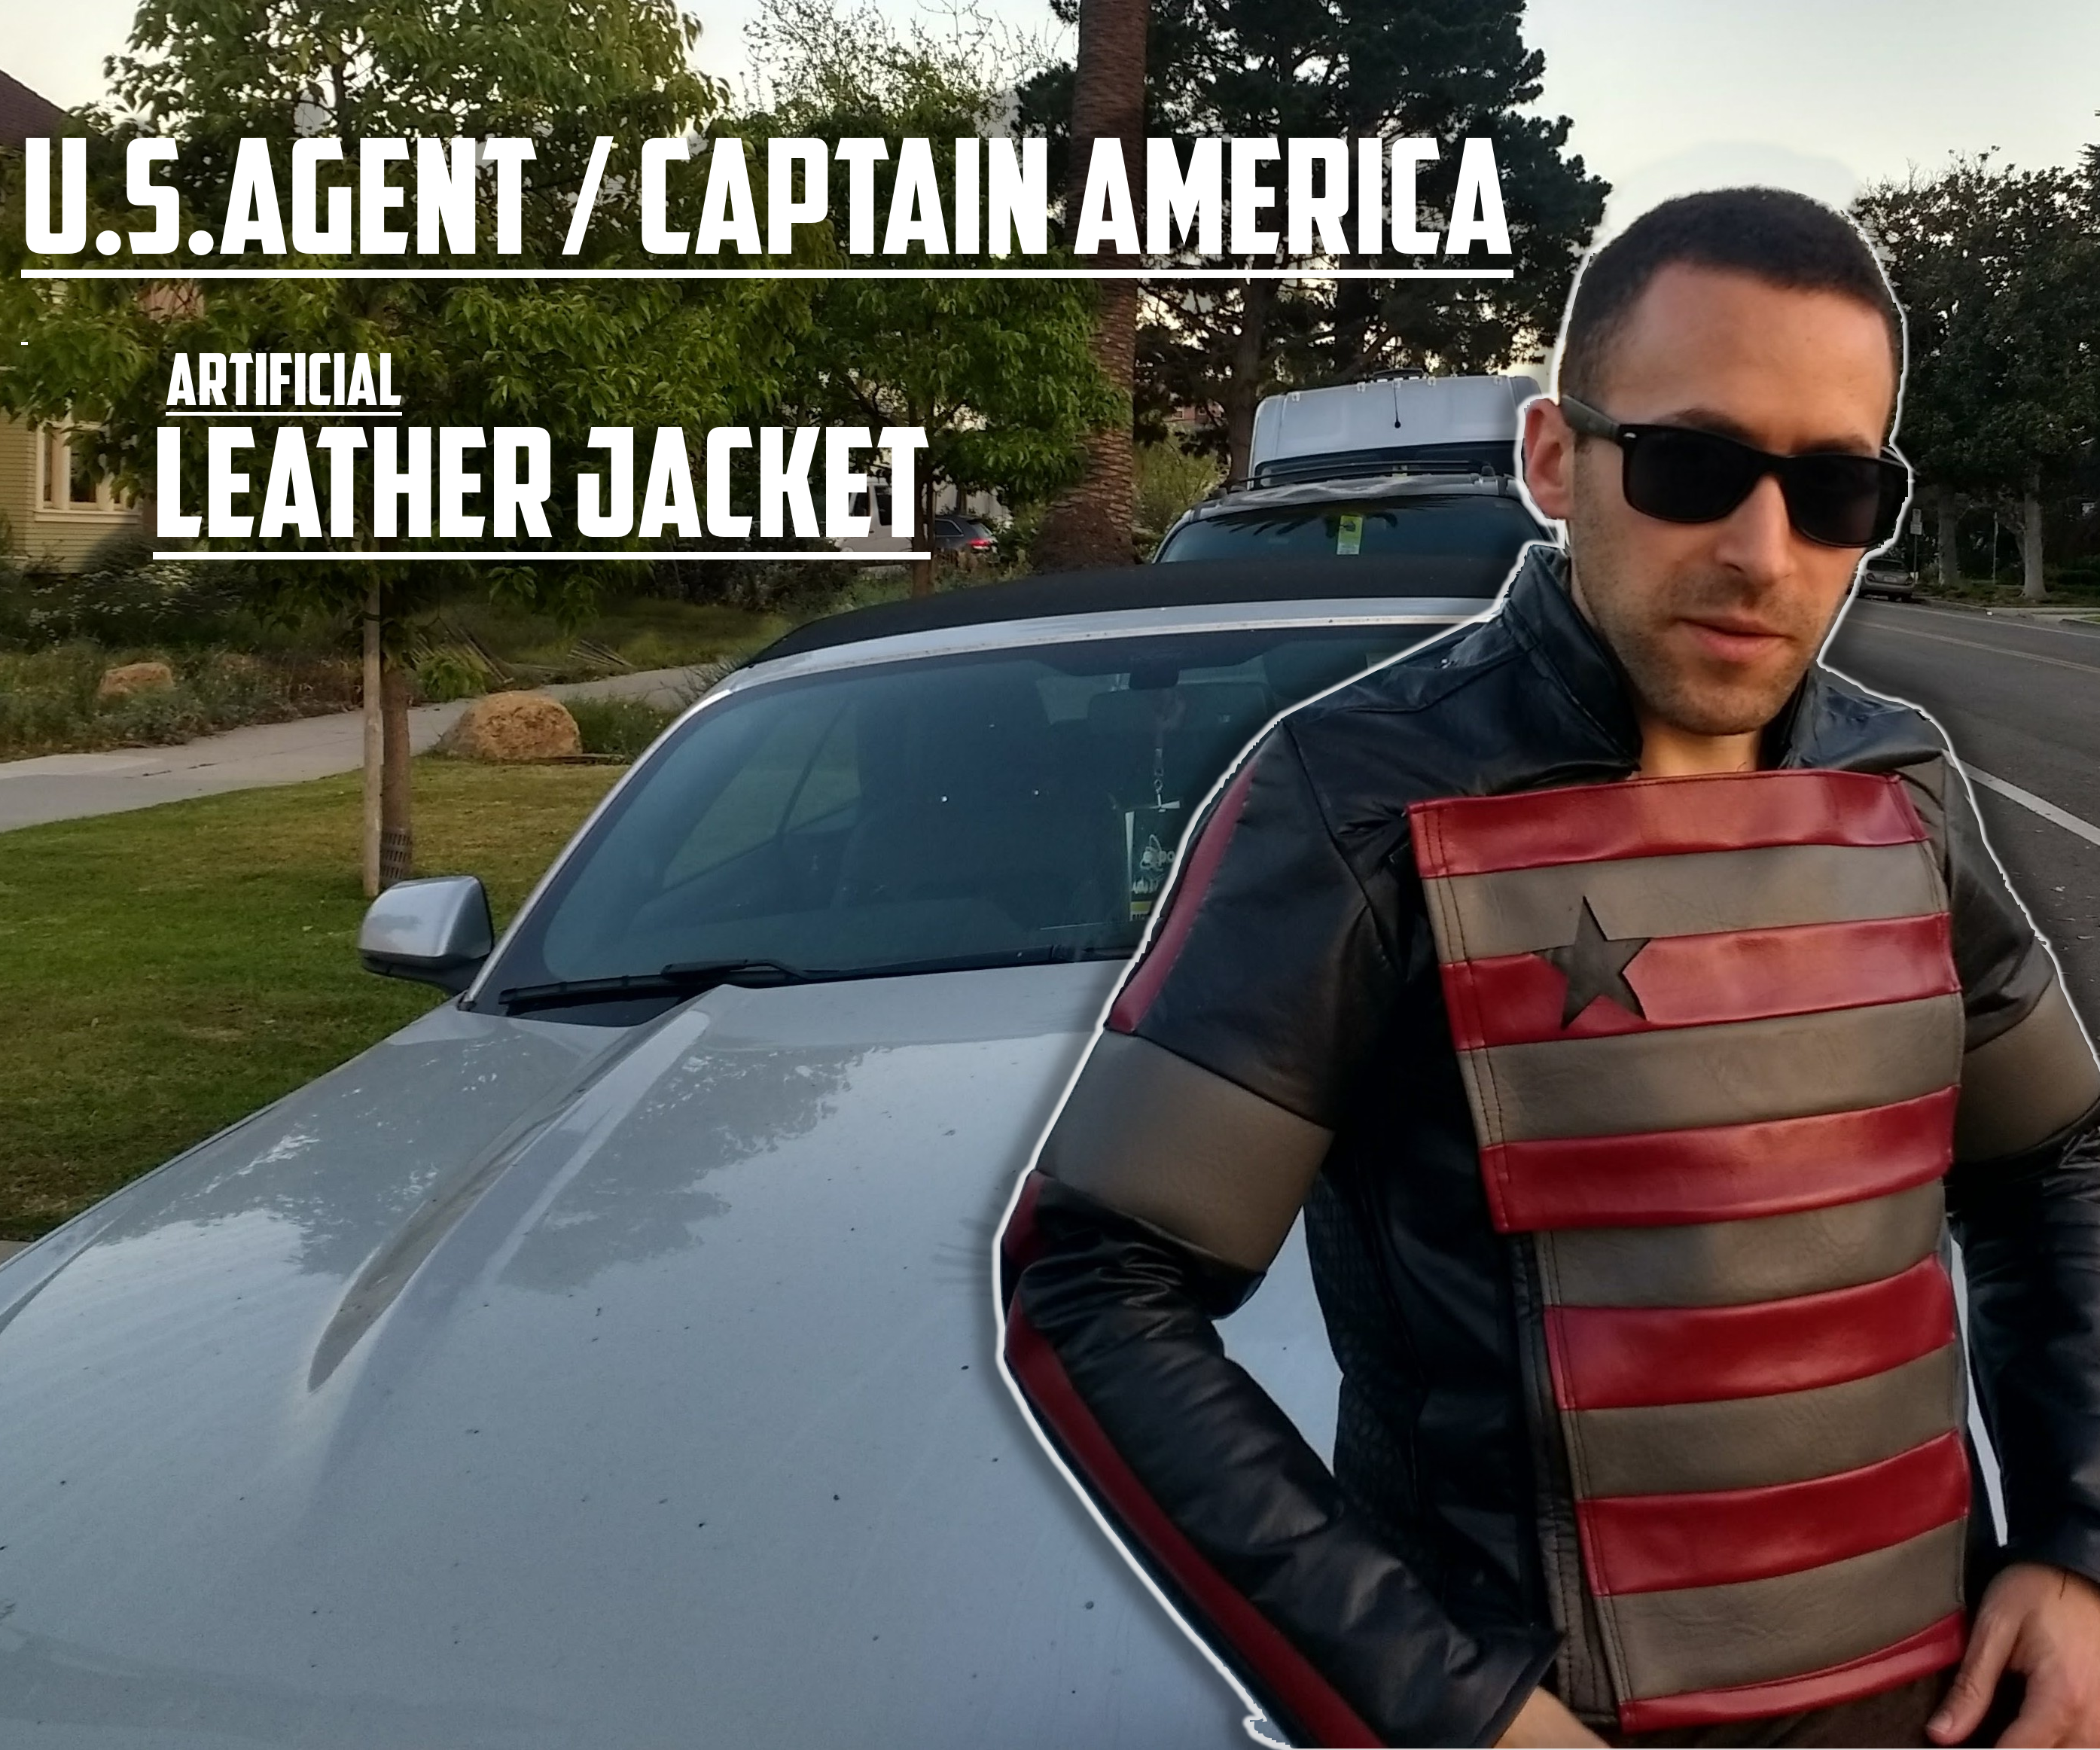 Captain America/US Agent Artificial Leather Jacket